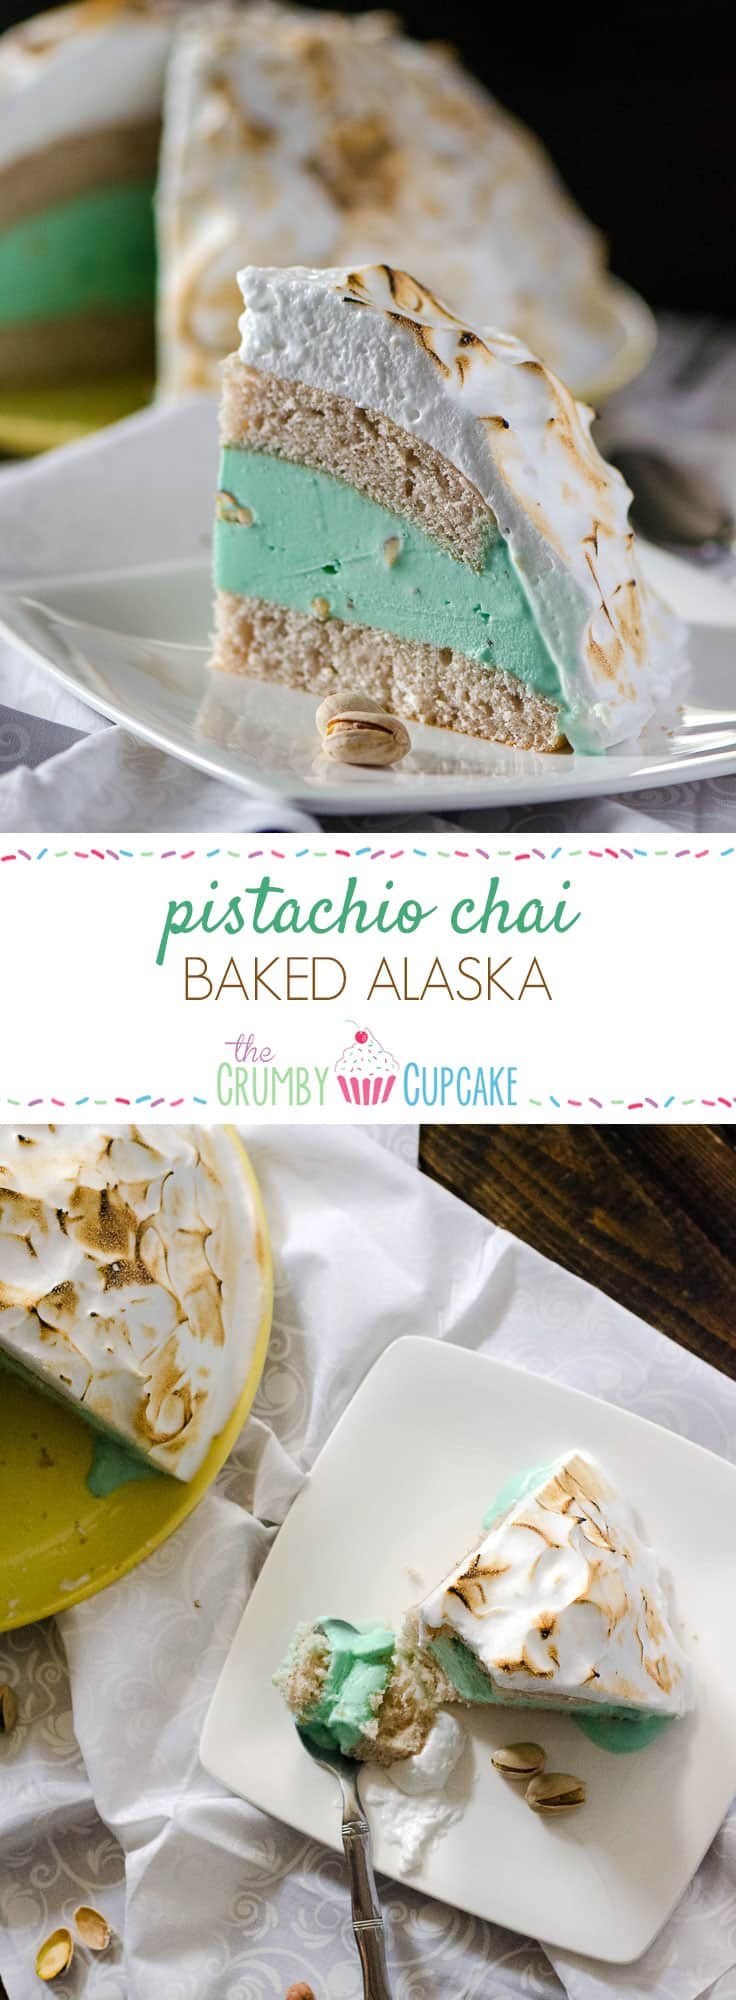 Pistachio Chai Baked Alaska | Pistachio almond ice cream, sandwiched between two layers of vanilla chai cake, all topped with fluffy meringue...and then baked! This old-fashioned dessert is as fun as it is delicious.